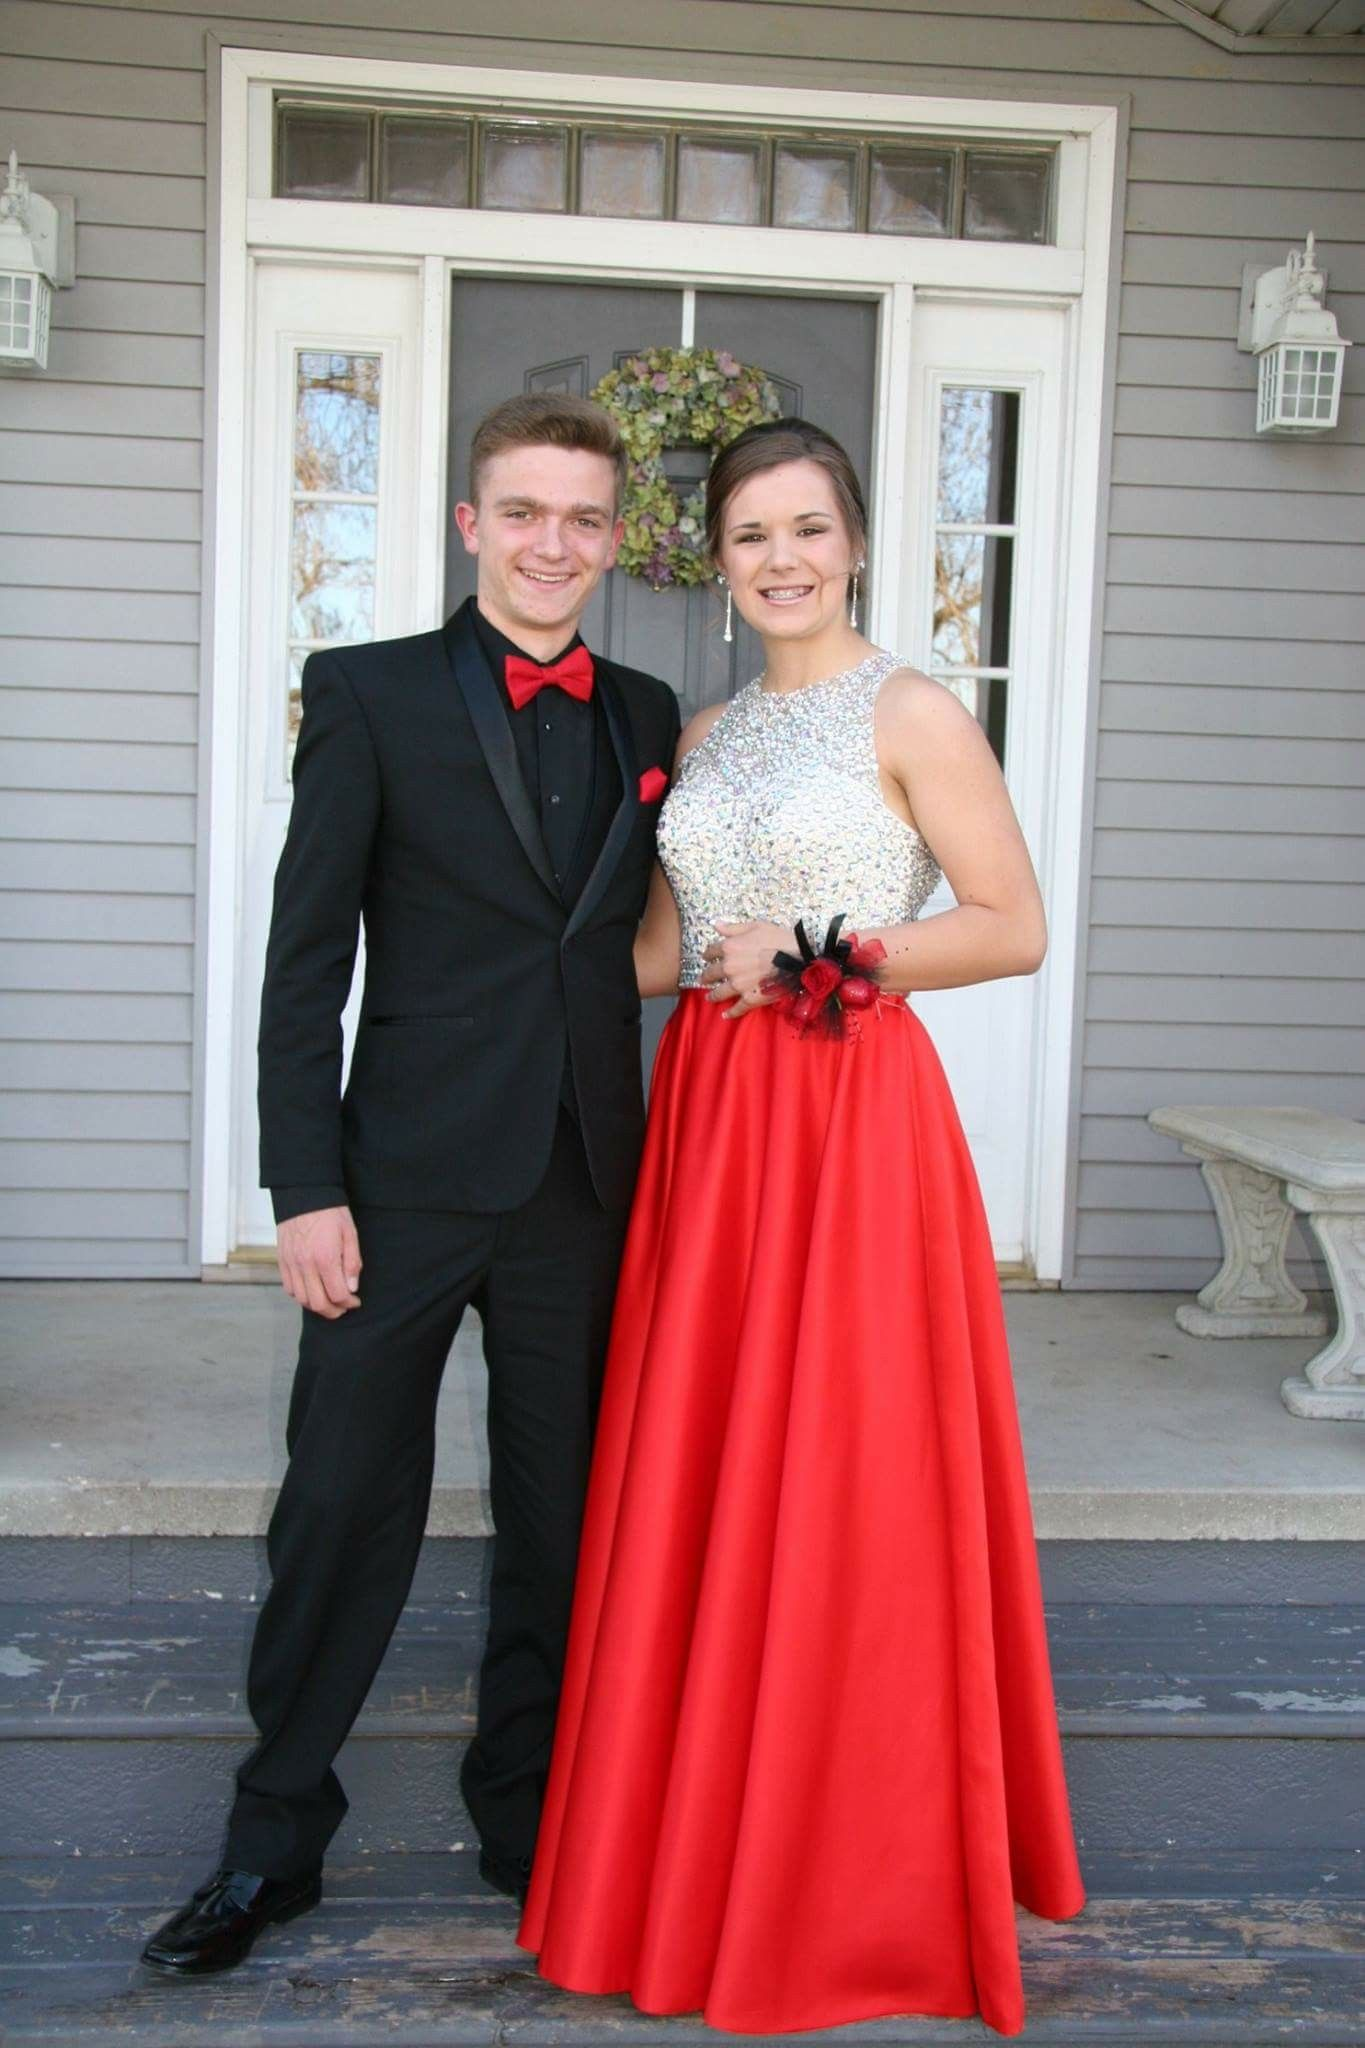 Prom Red Tux With Red Dress Red Prom Dress Prom Tux Homecoming Outfits